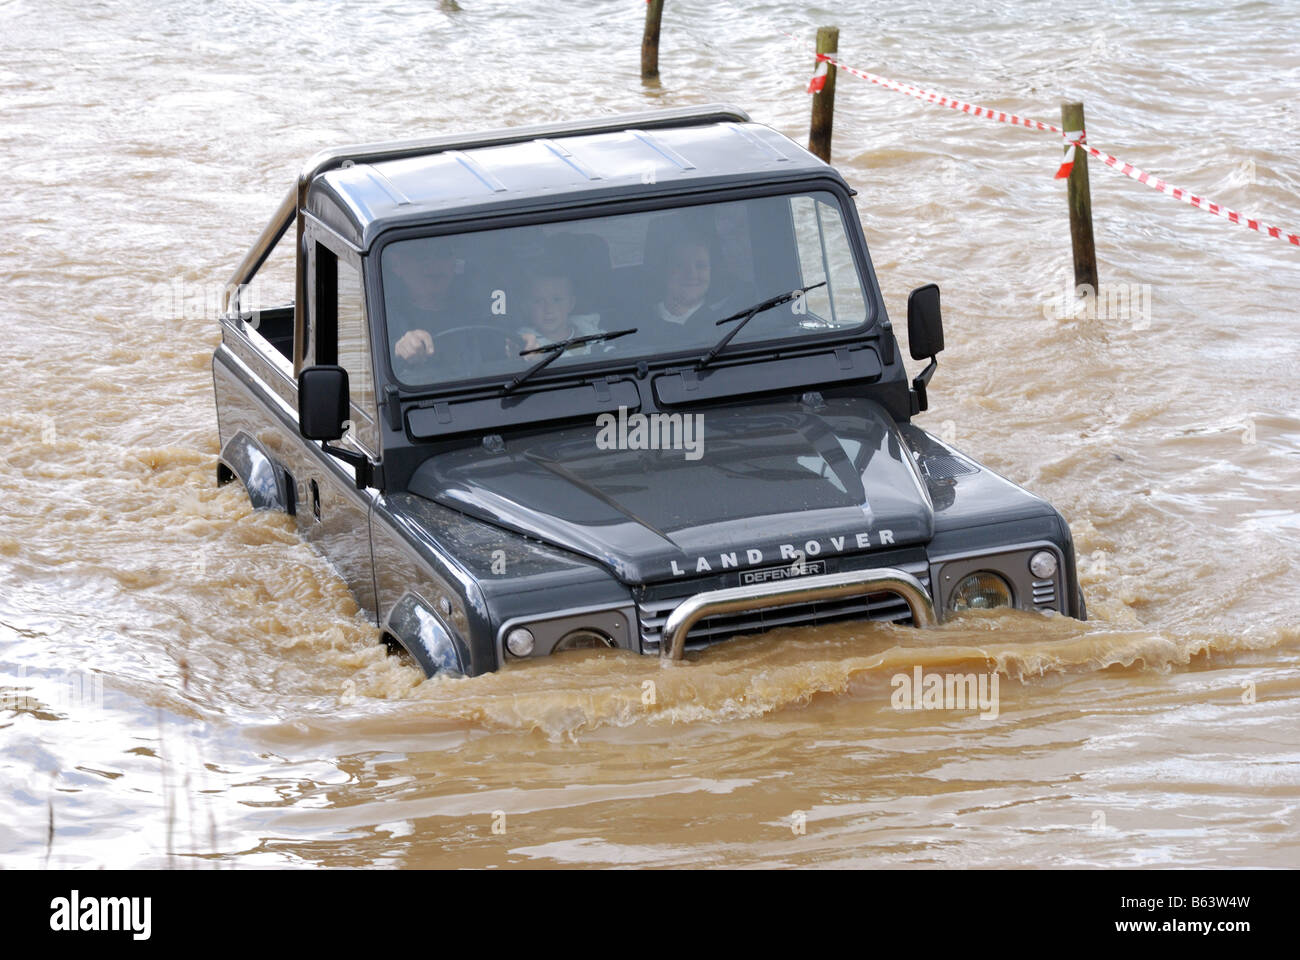 Green short wheelbase Land Rover Defender with anti roll bar in the water at Billing drive around 4WD four wheel - Stock Image